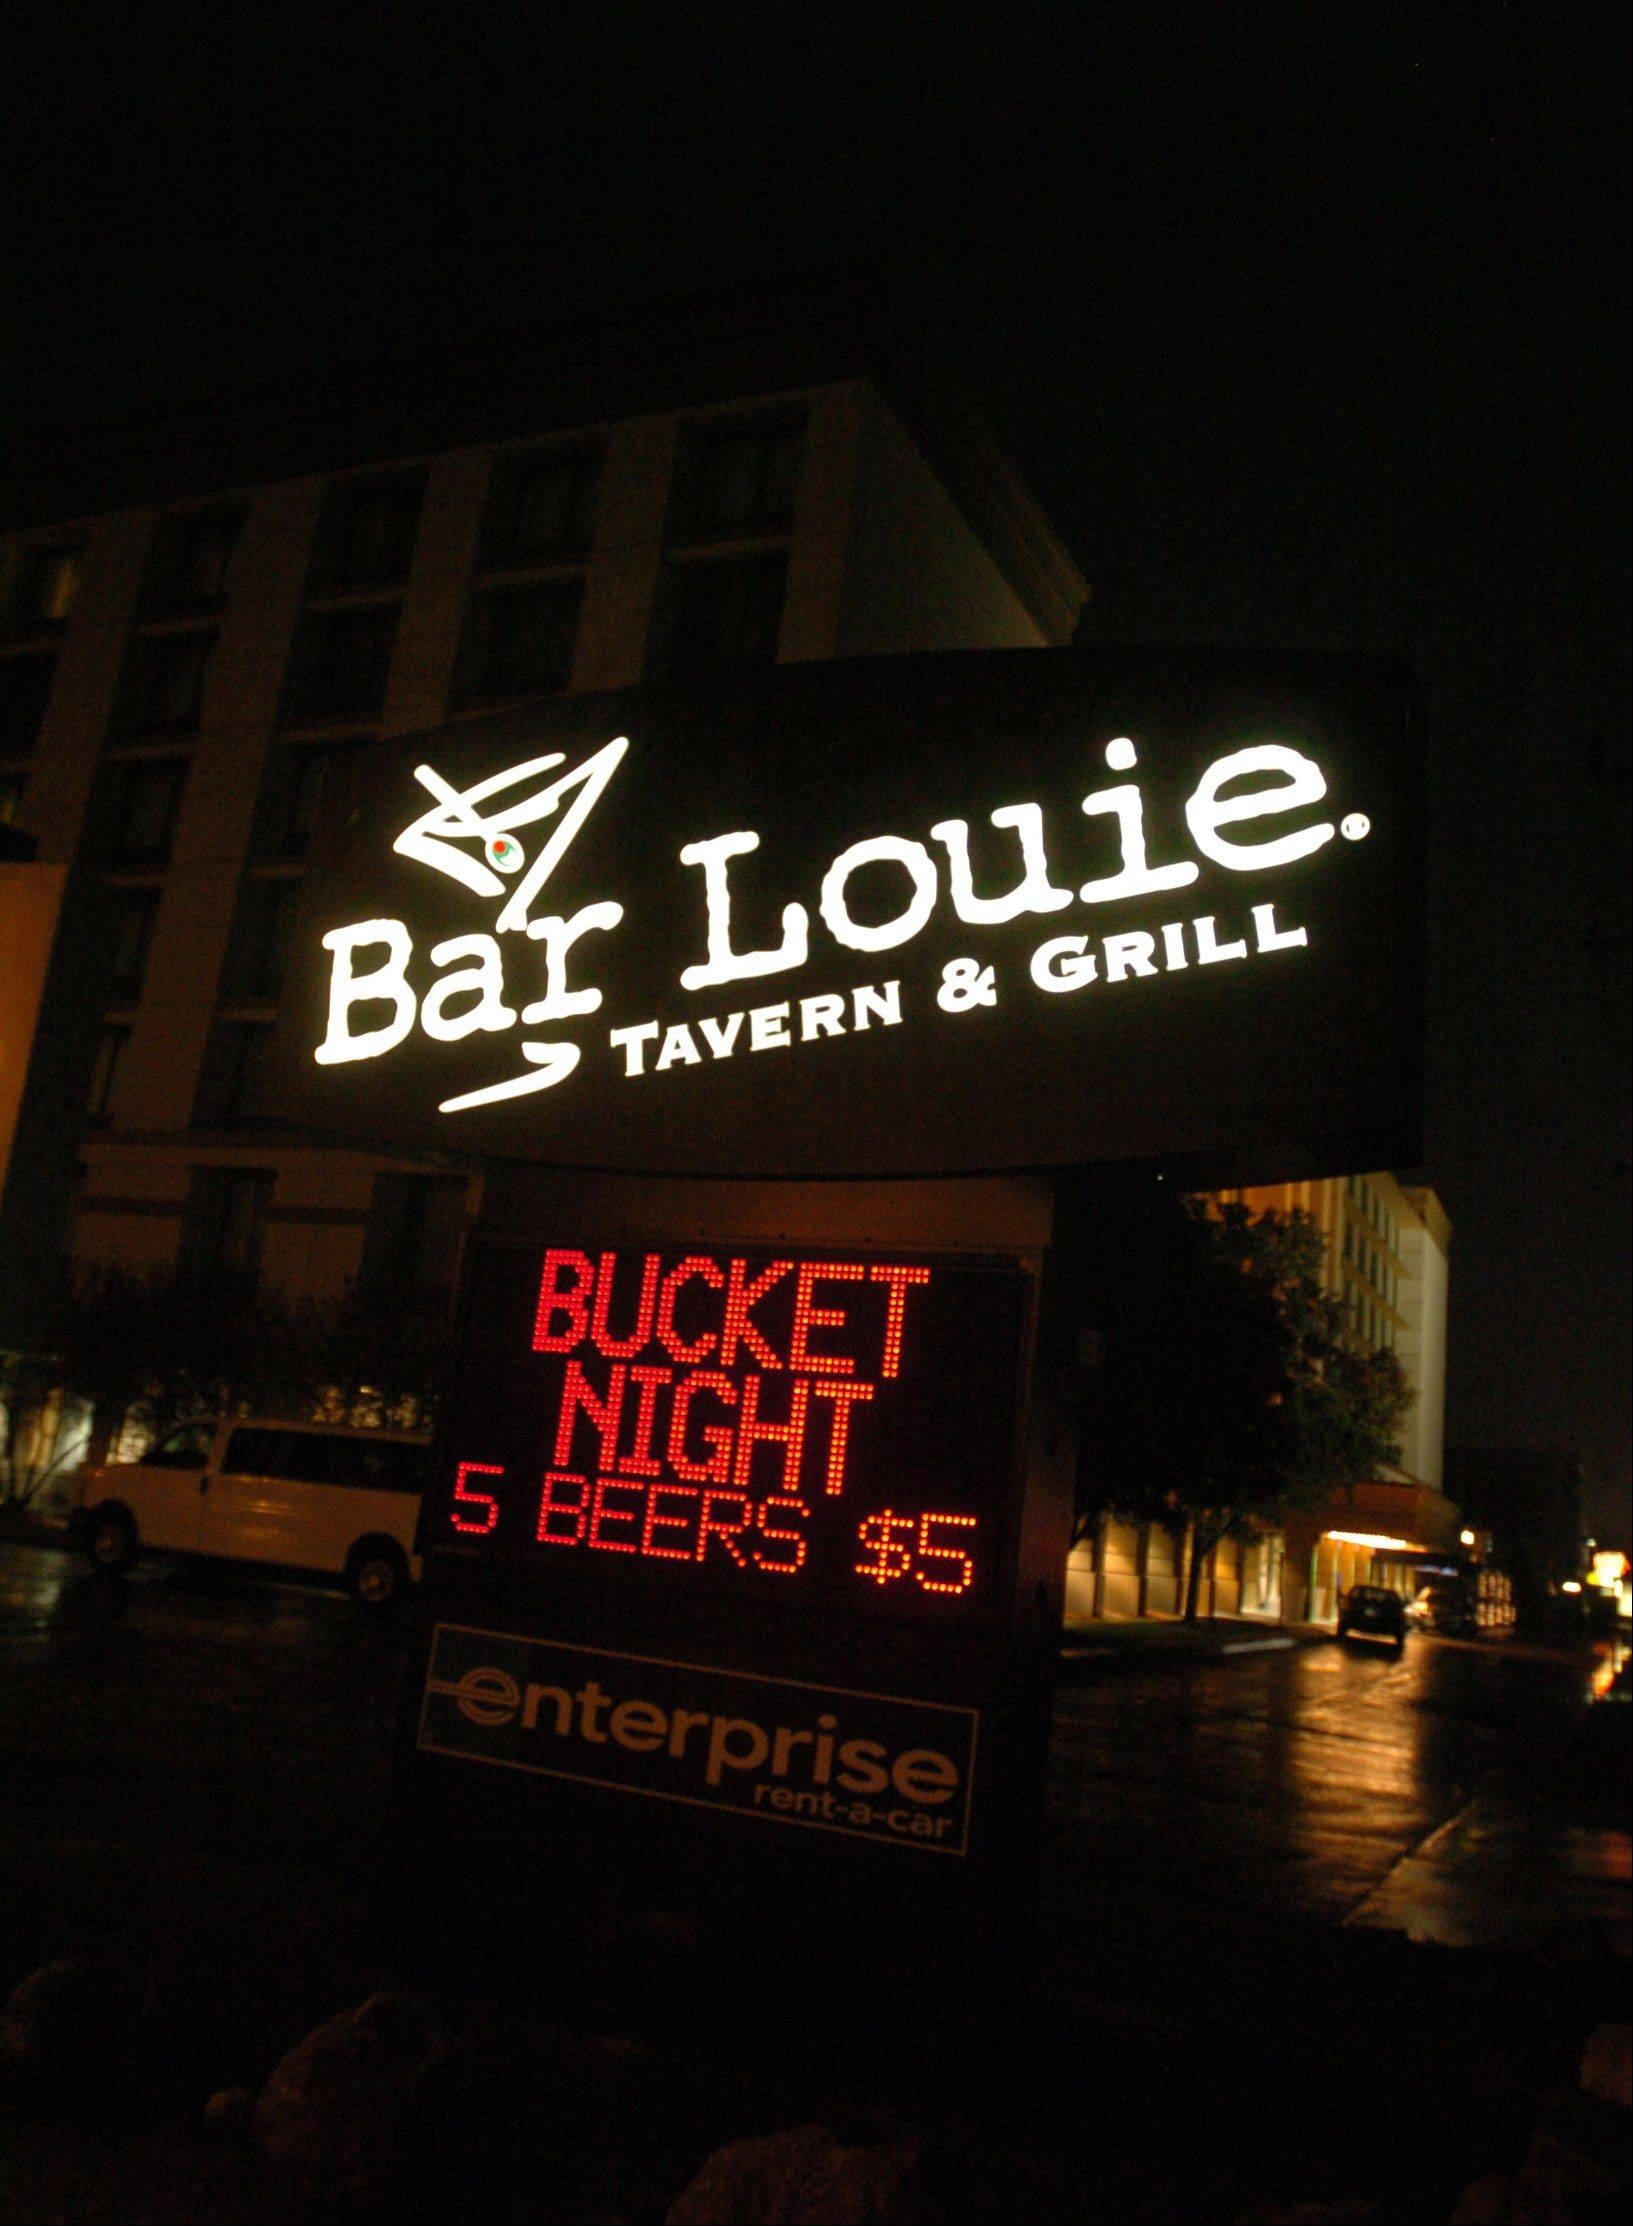 Bar Louie in Oakbrook Terrace brings in hotel guests and locals.